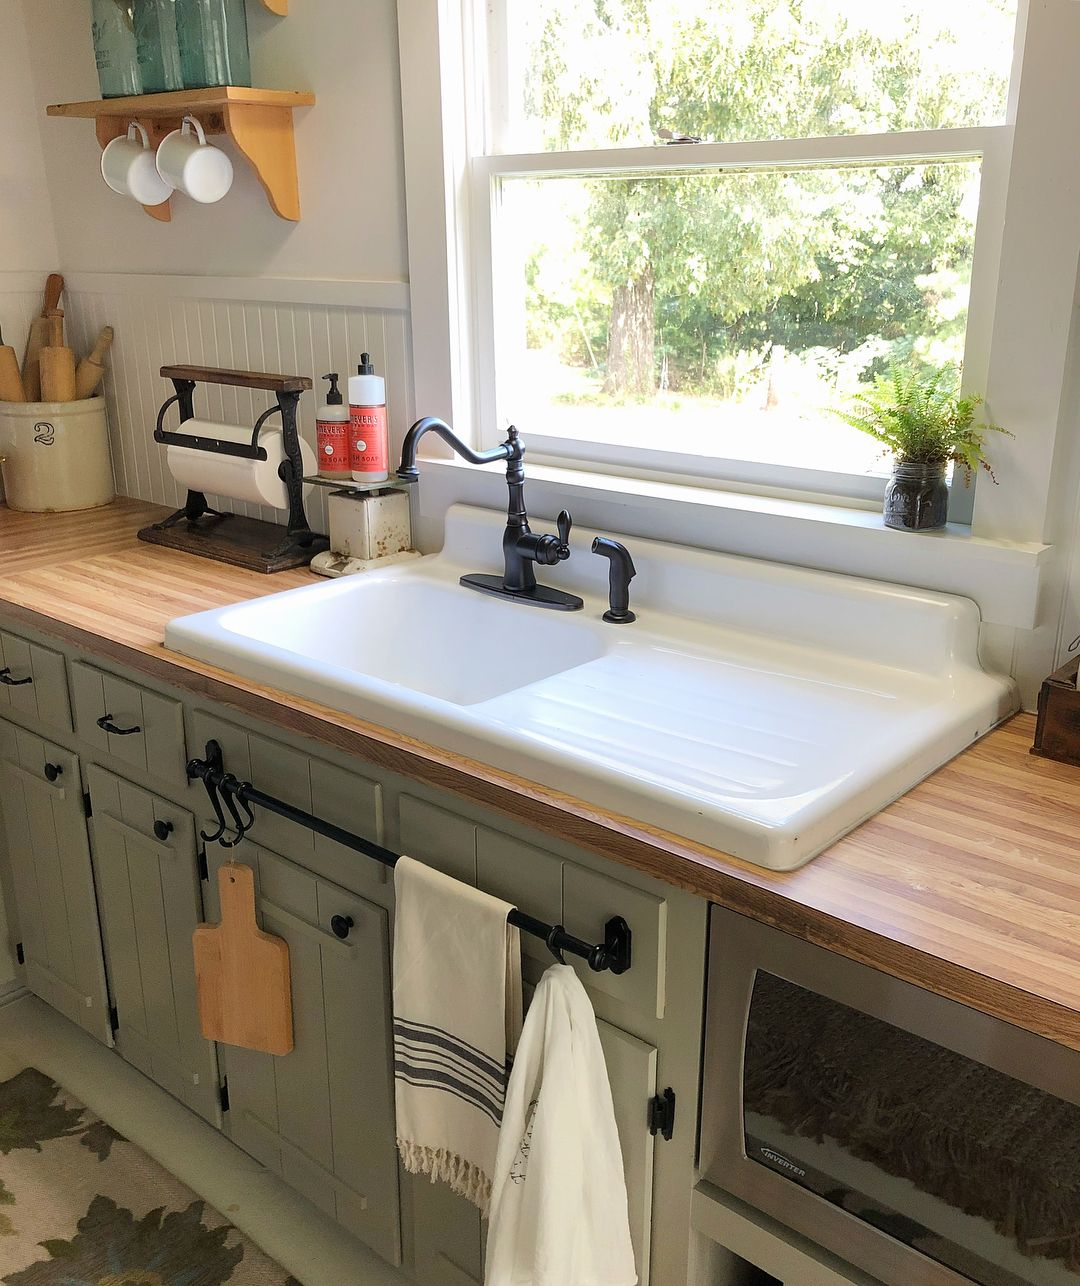 How To Use A Drainboard Sink